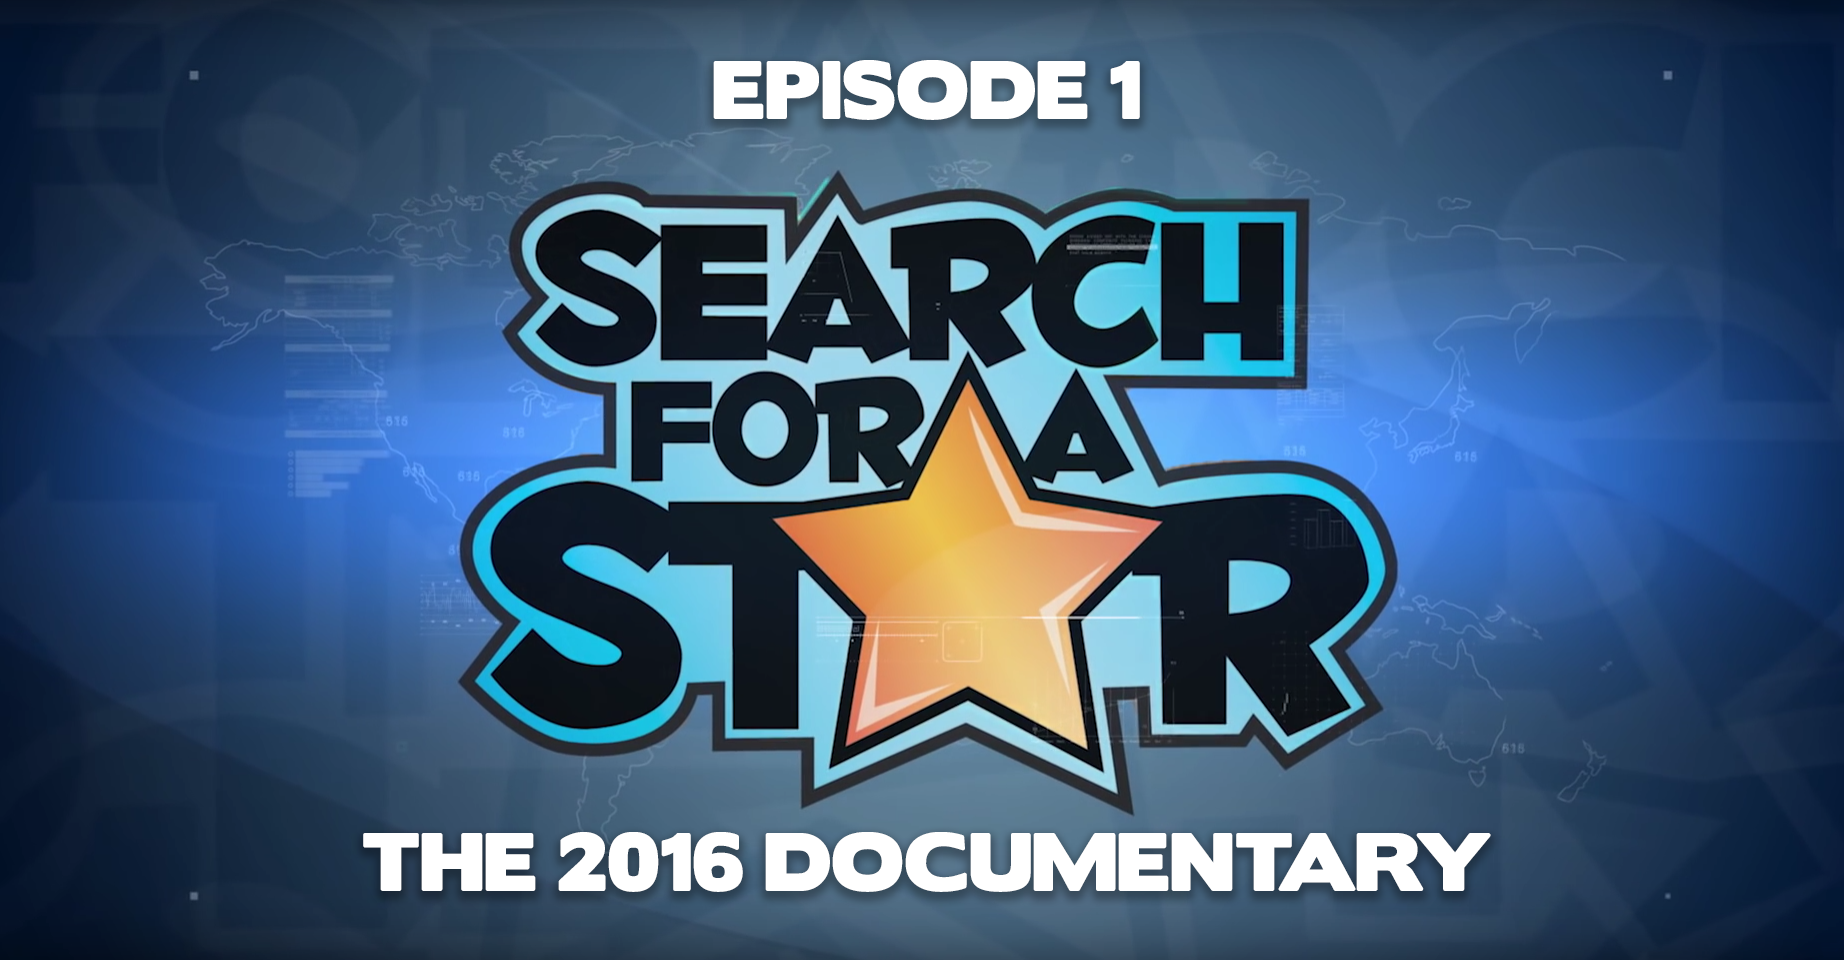 The Search For A Star 2016 Documentary is now live!